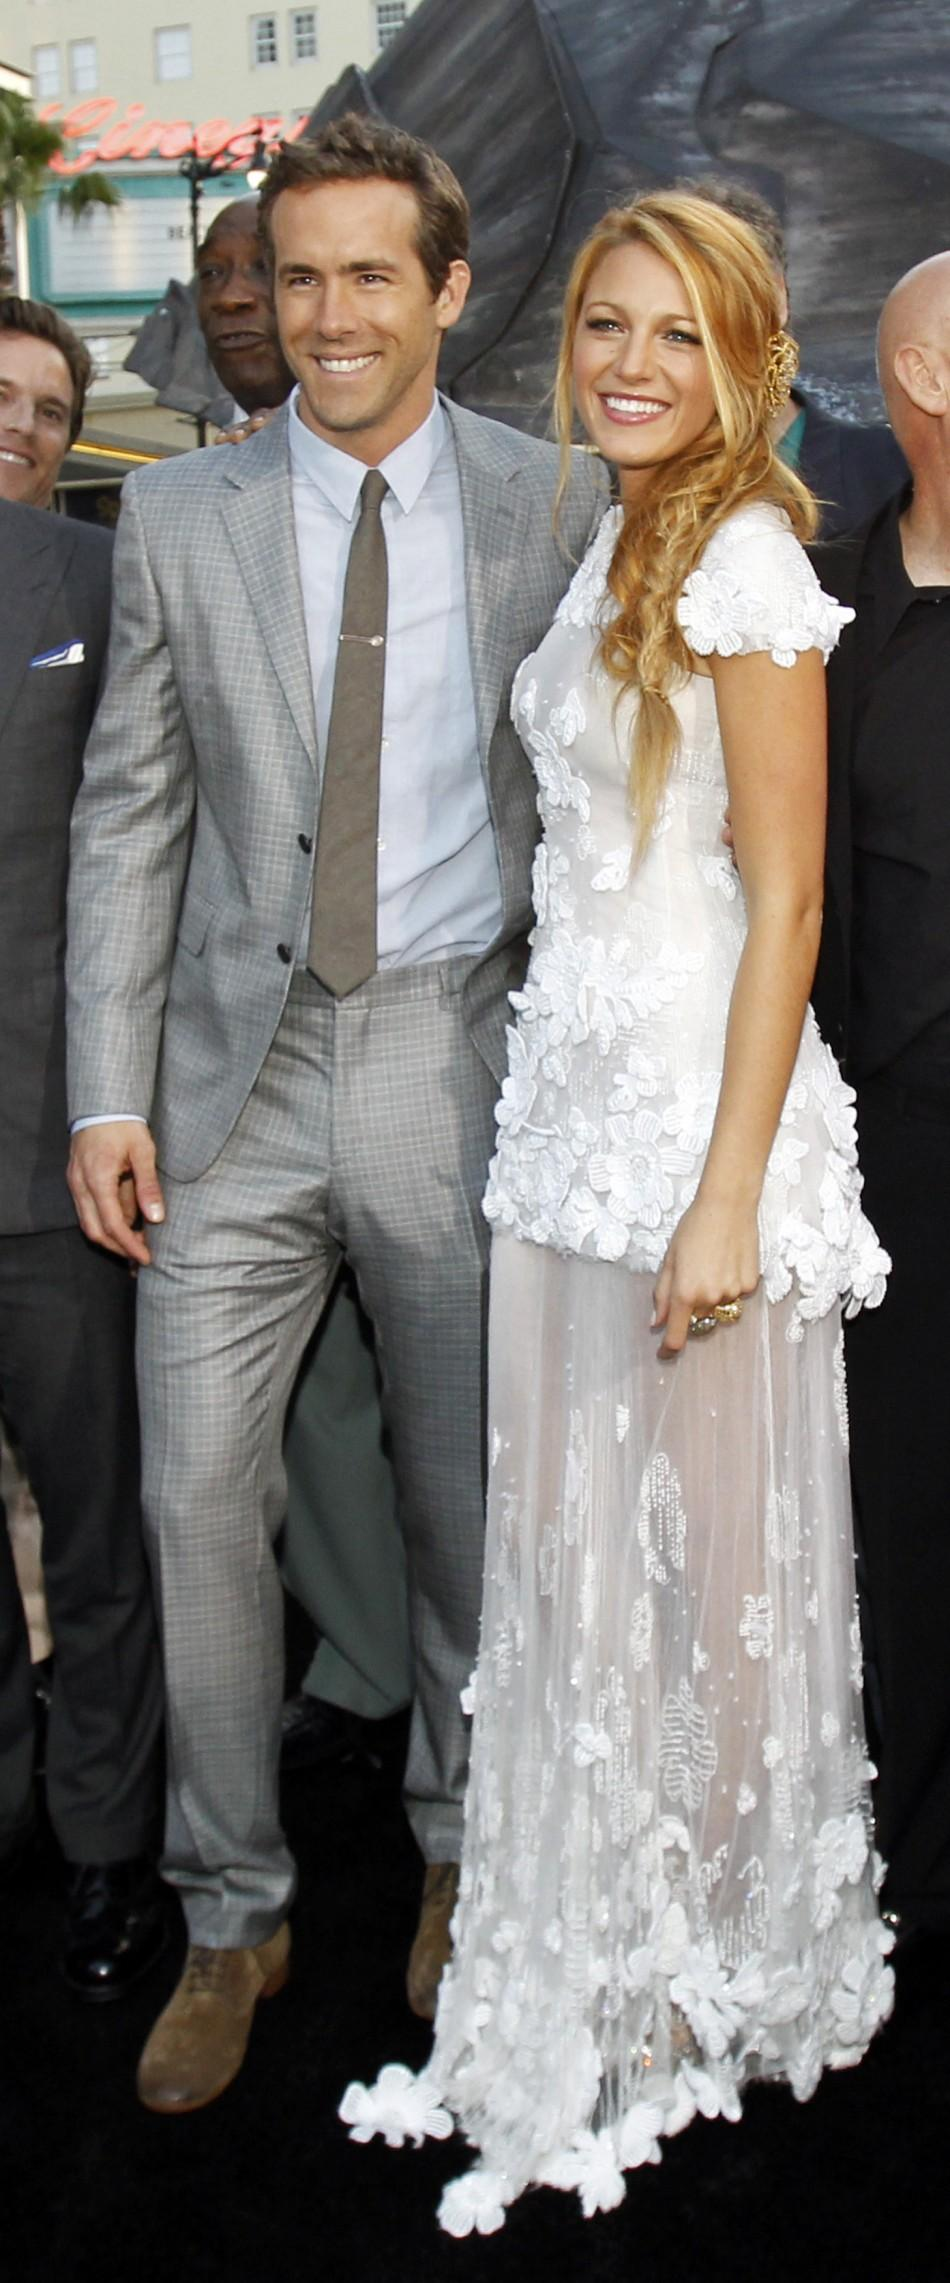 "Cast members Ryan Reynolds and Blake Lively pose at the premiere of ""Green Lantern"" at the Grauman's Chinese theatre in Hollywood, California June 15, 2011."